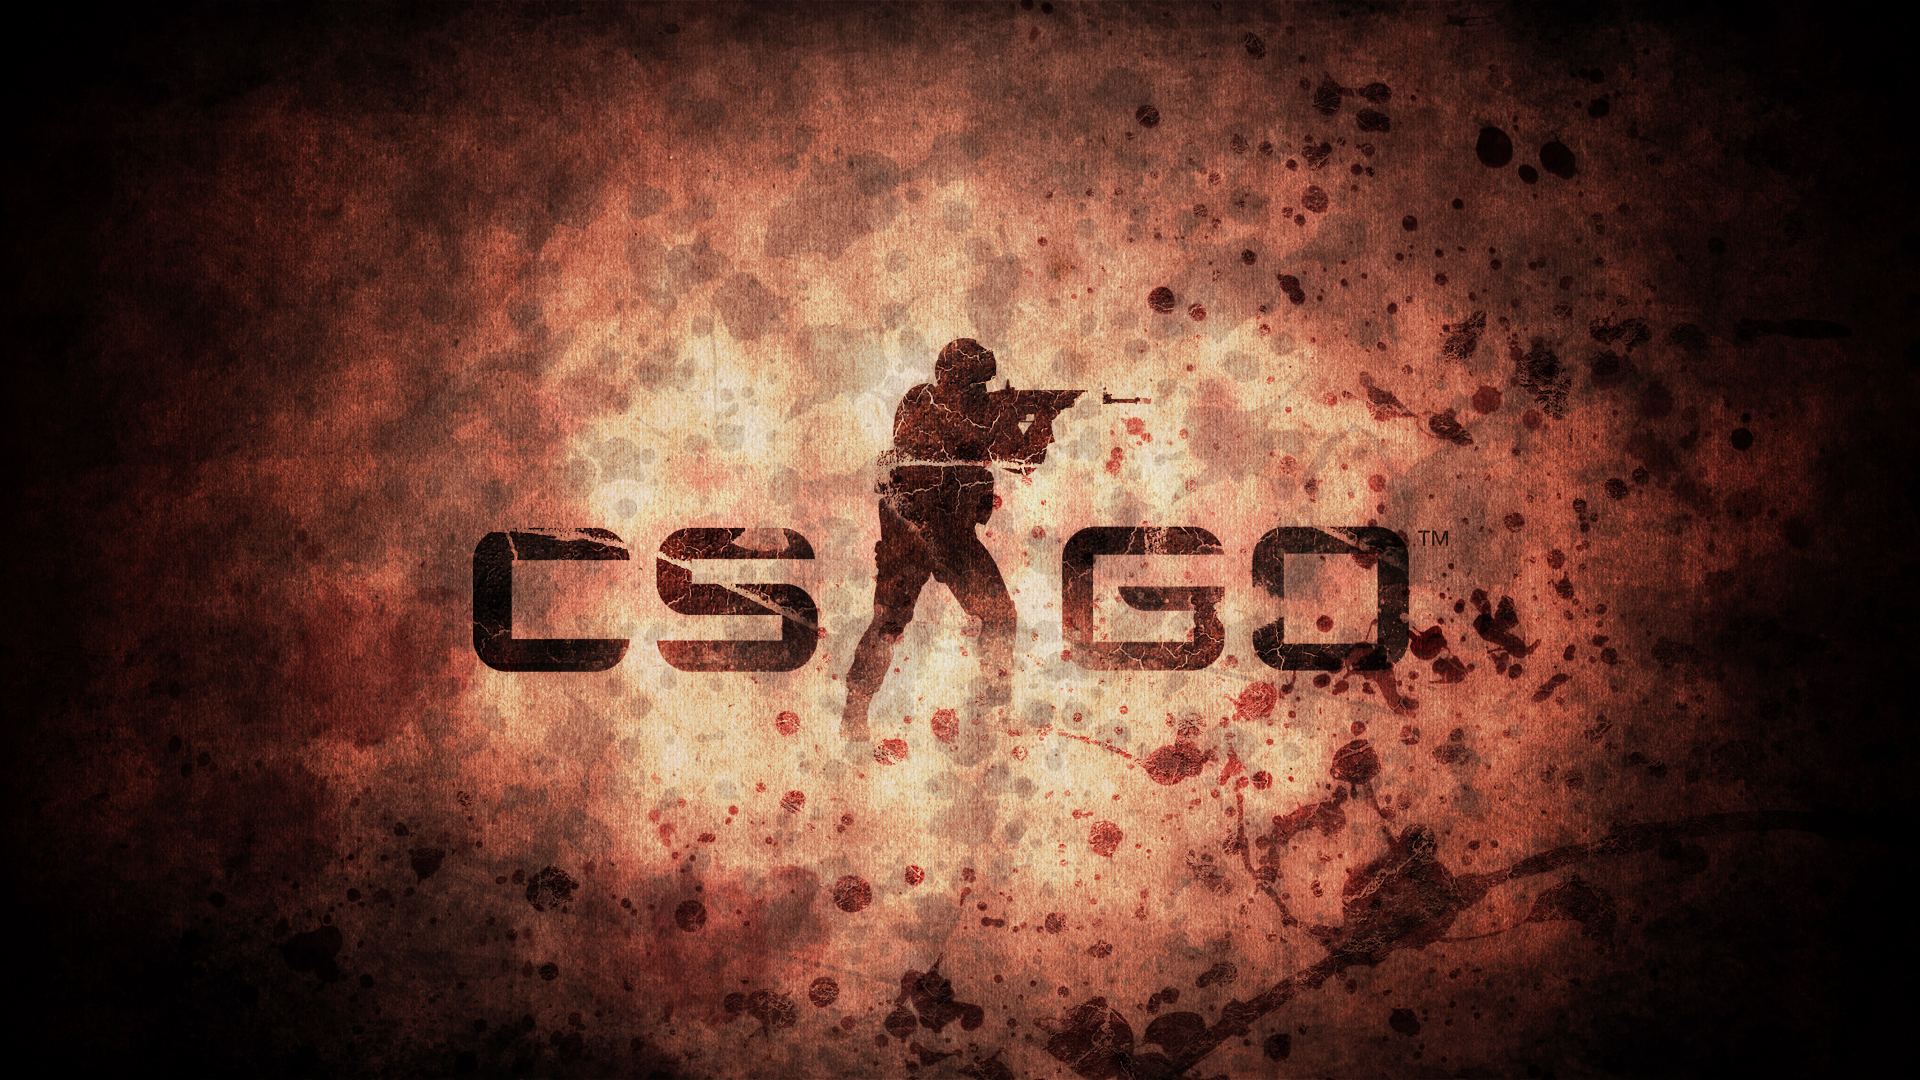 Cs Go Hack Aimbot and Wallhack Undetectable 1920x1080